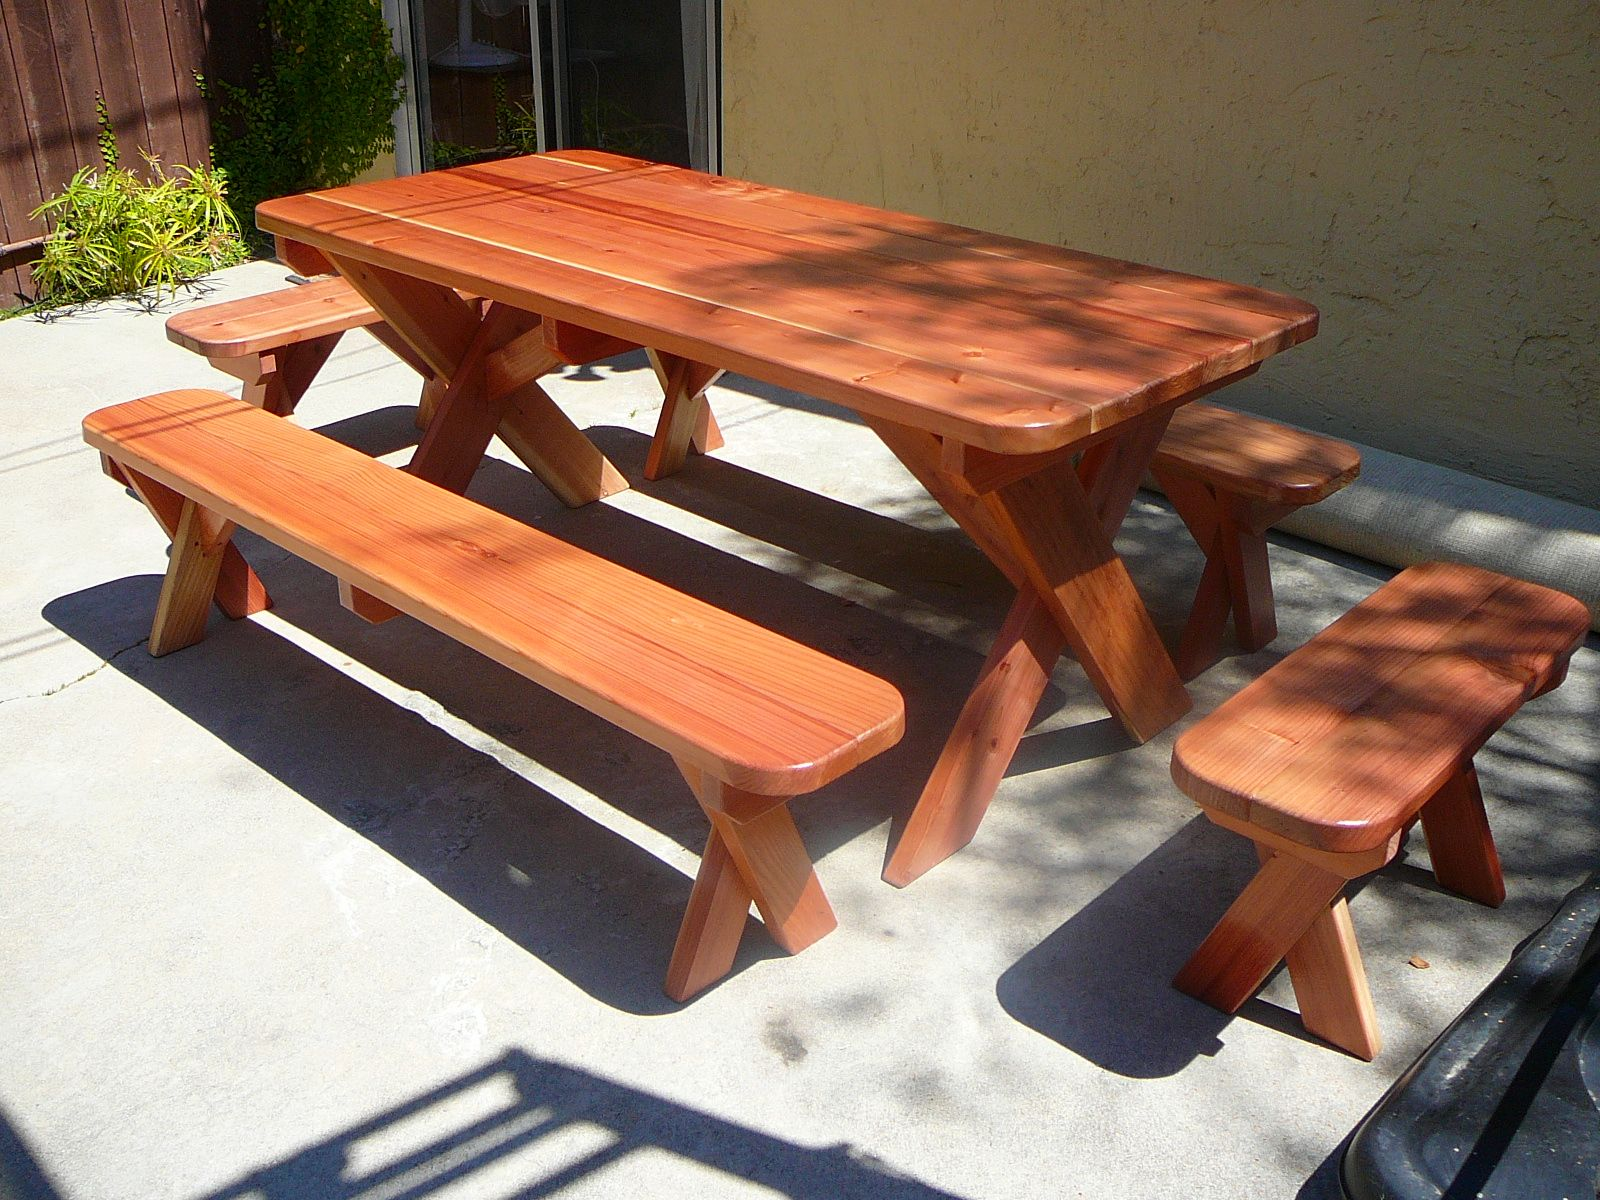 Picnic Table Bench Plans   6ft. Redwood Picnic Table And 4 Benches